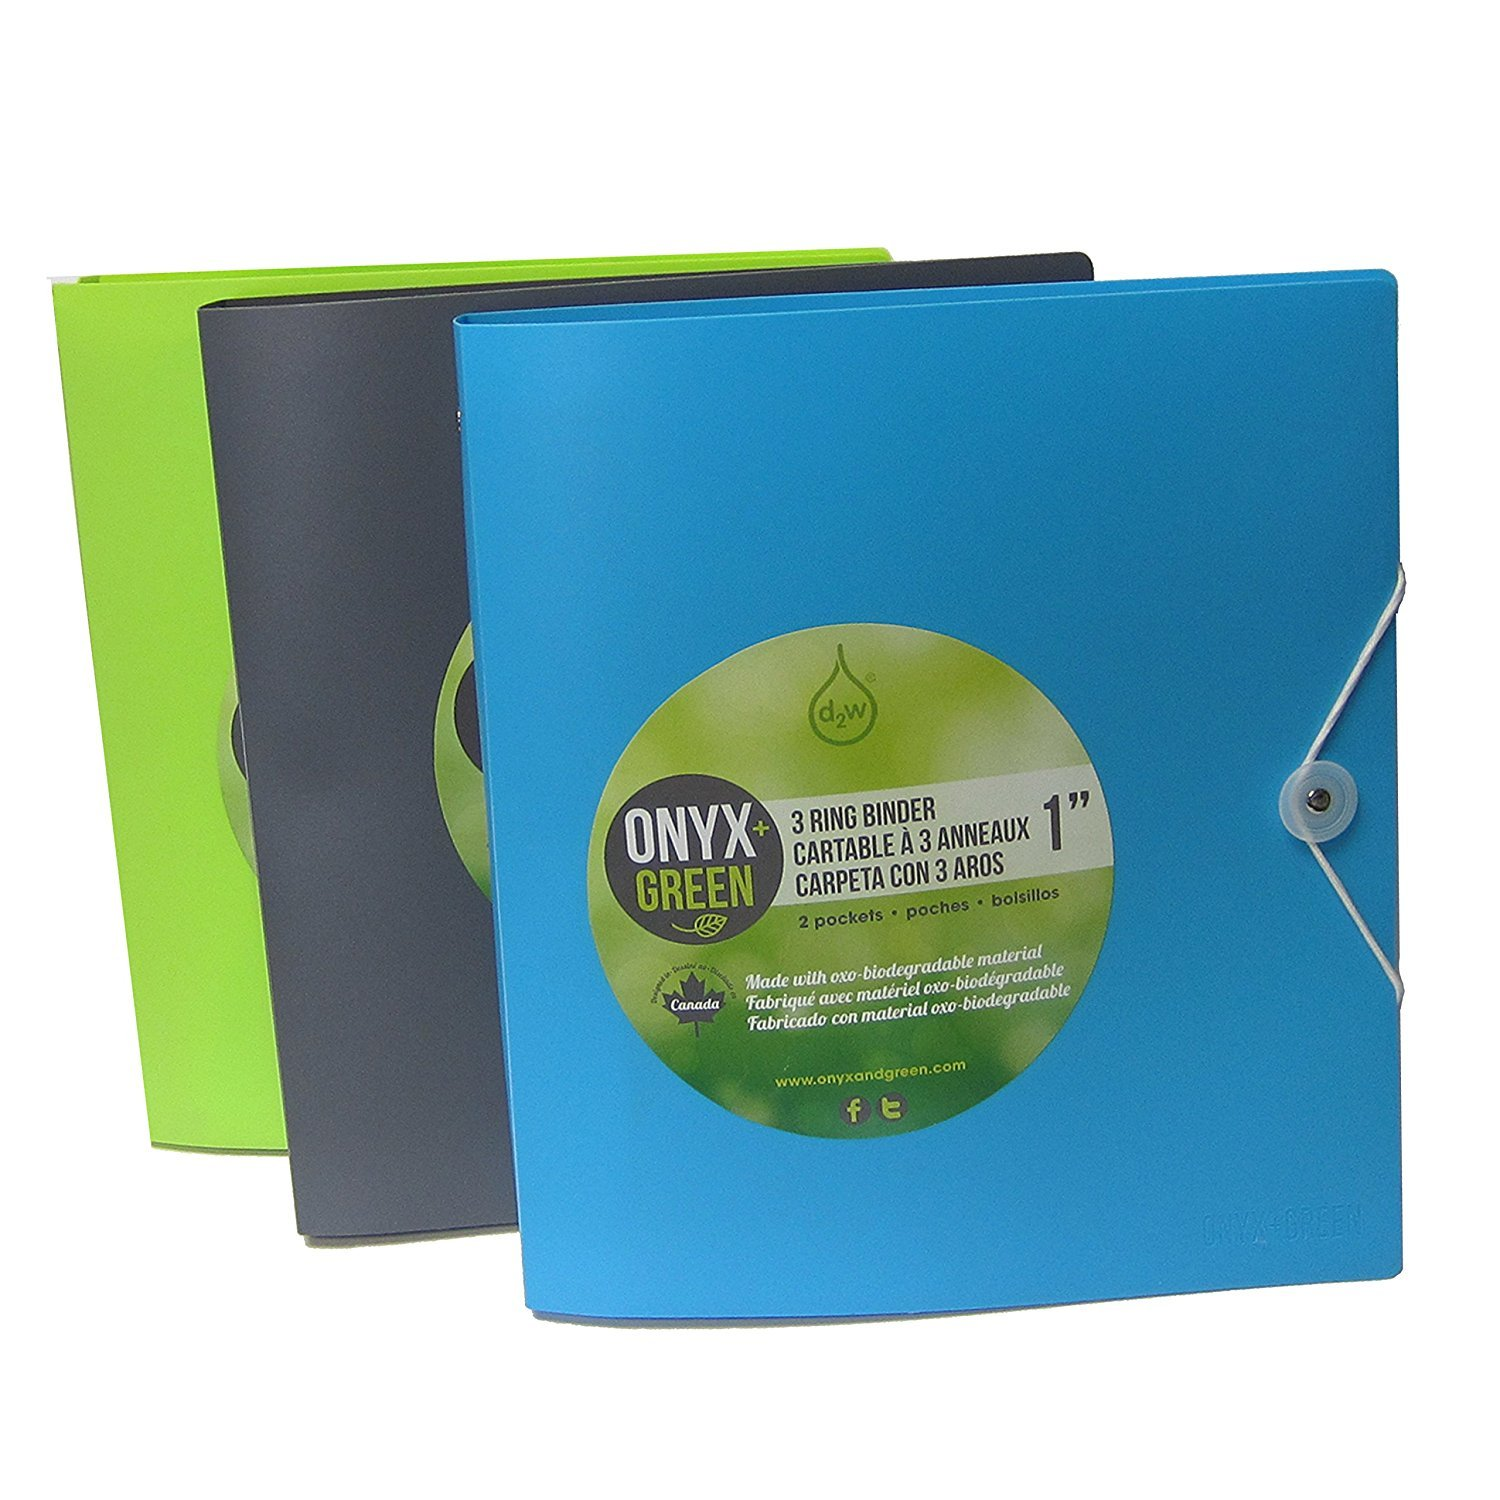 Recycled Sustainable Materials Green Eco Friendly School Office Supplies Kit - Binder and Presentation Folder Set by Onyx and Blue (Image #4)